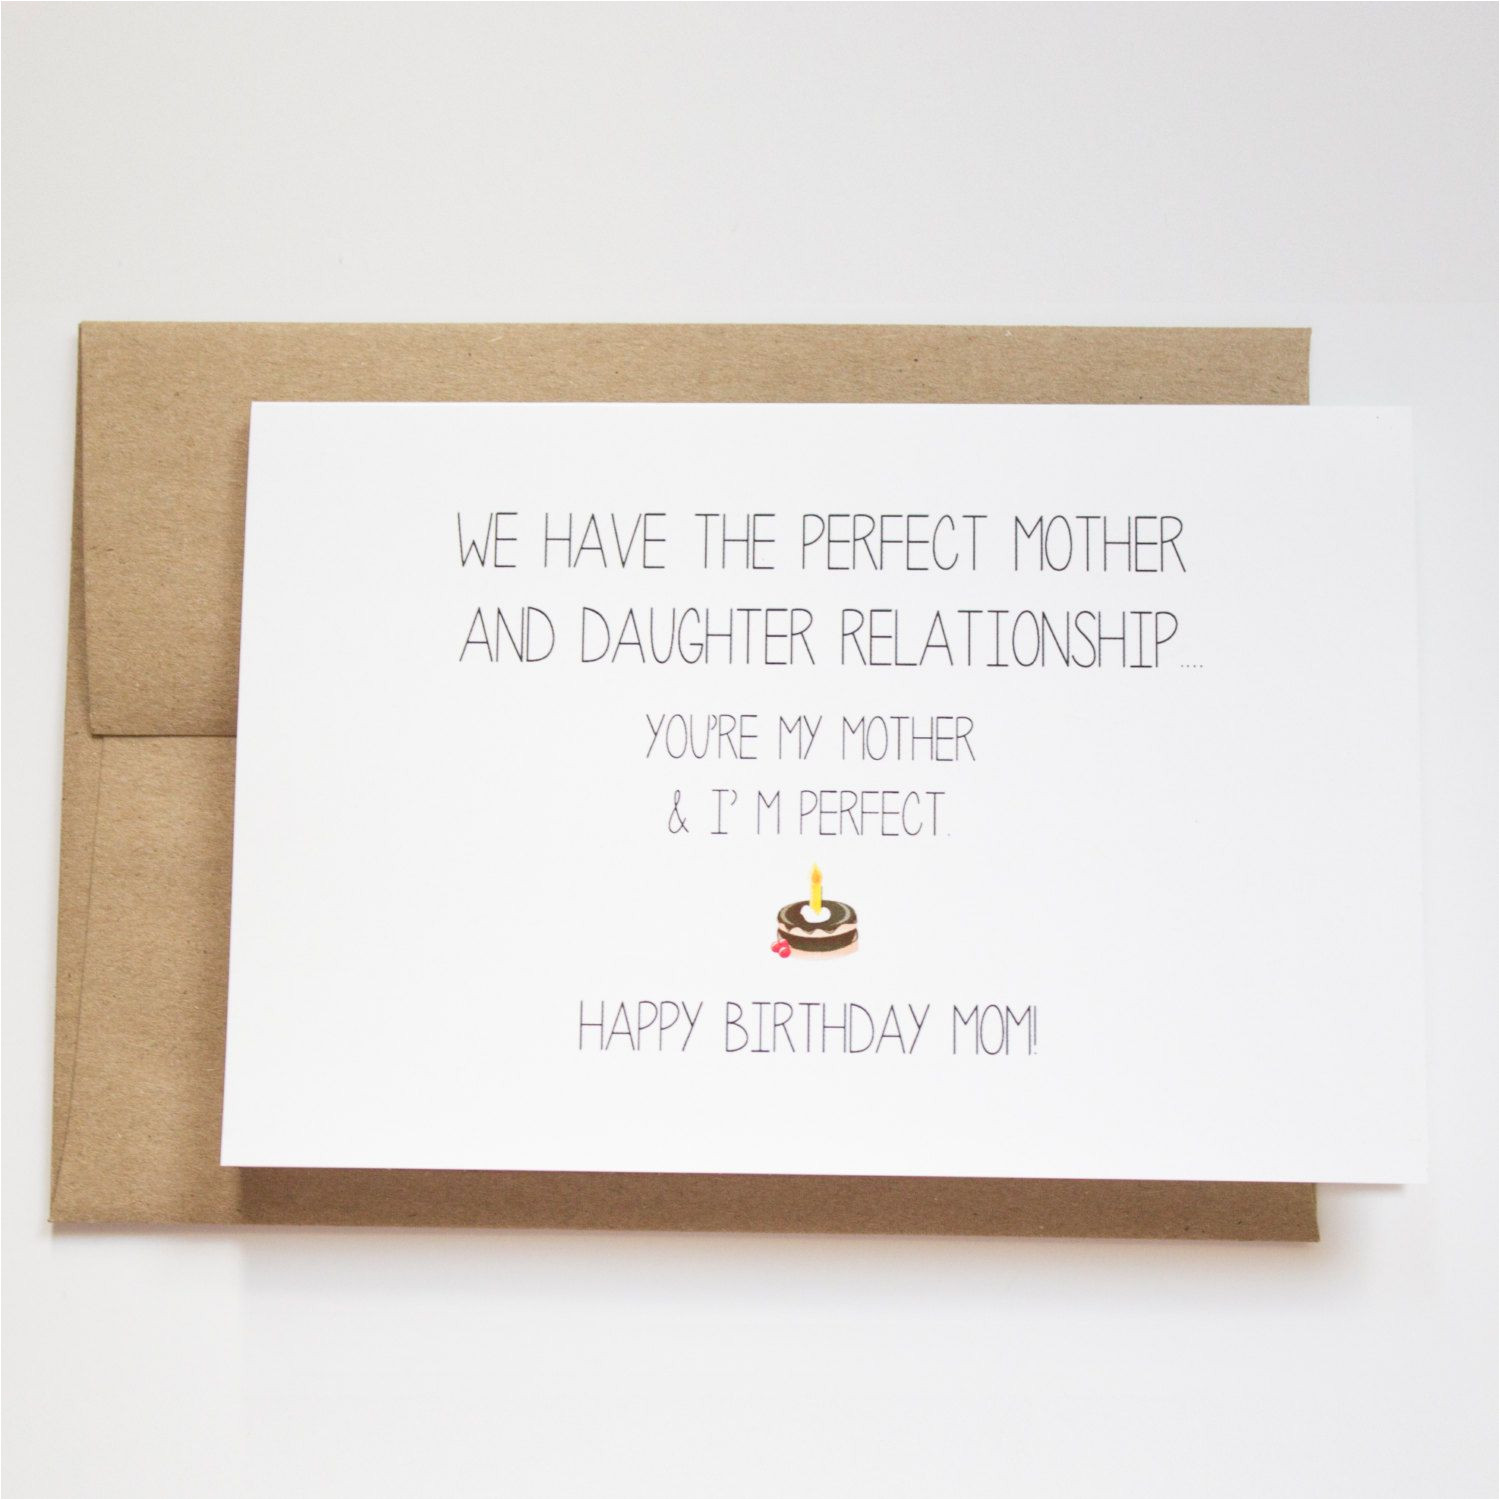 Happy Birthday Card to Mom Image Result for Funny Birthday Card Ideas with Images